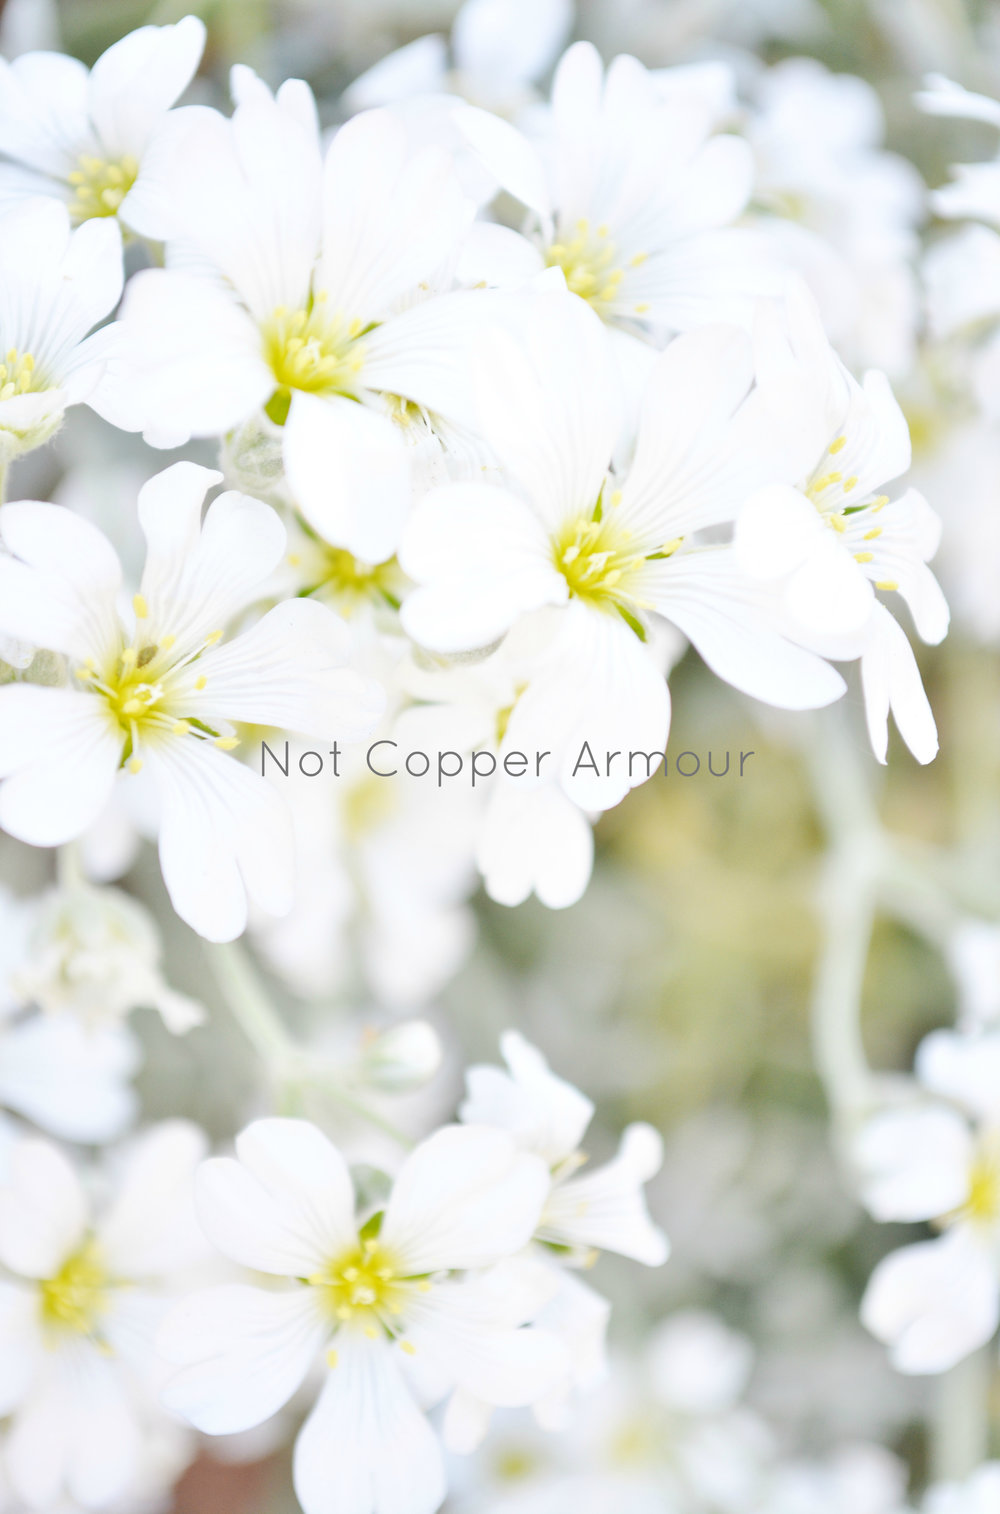 Not Copper Amour - WM #10.jpg